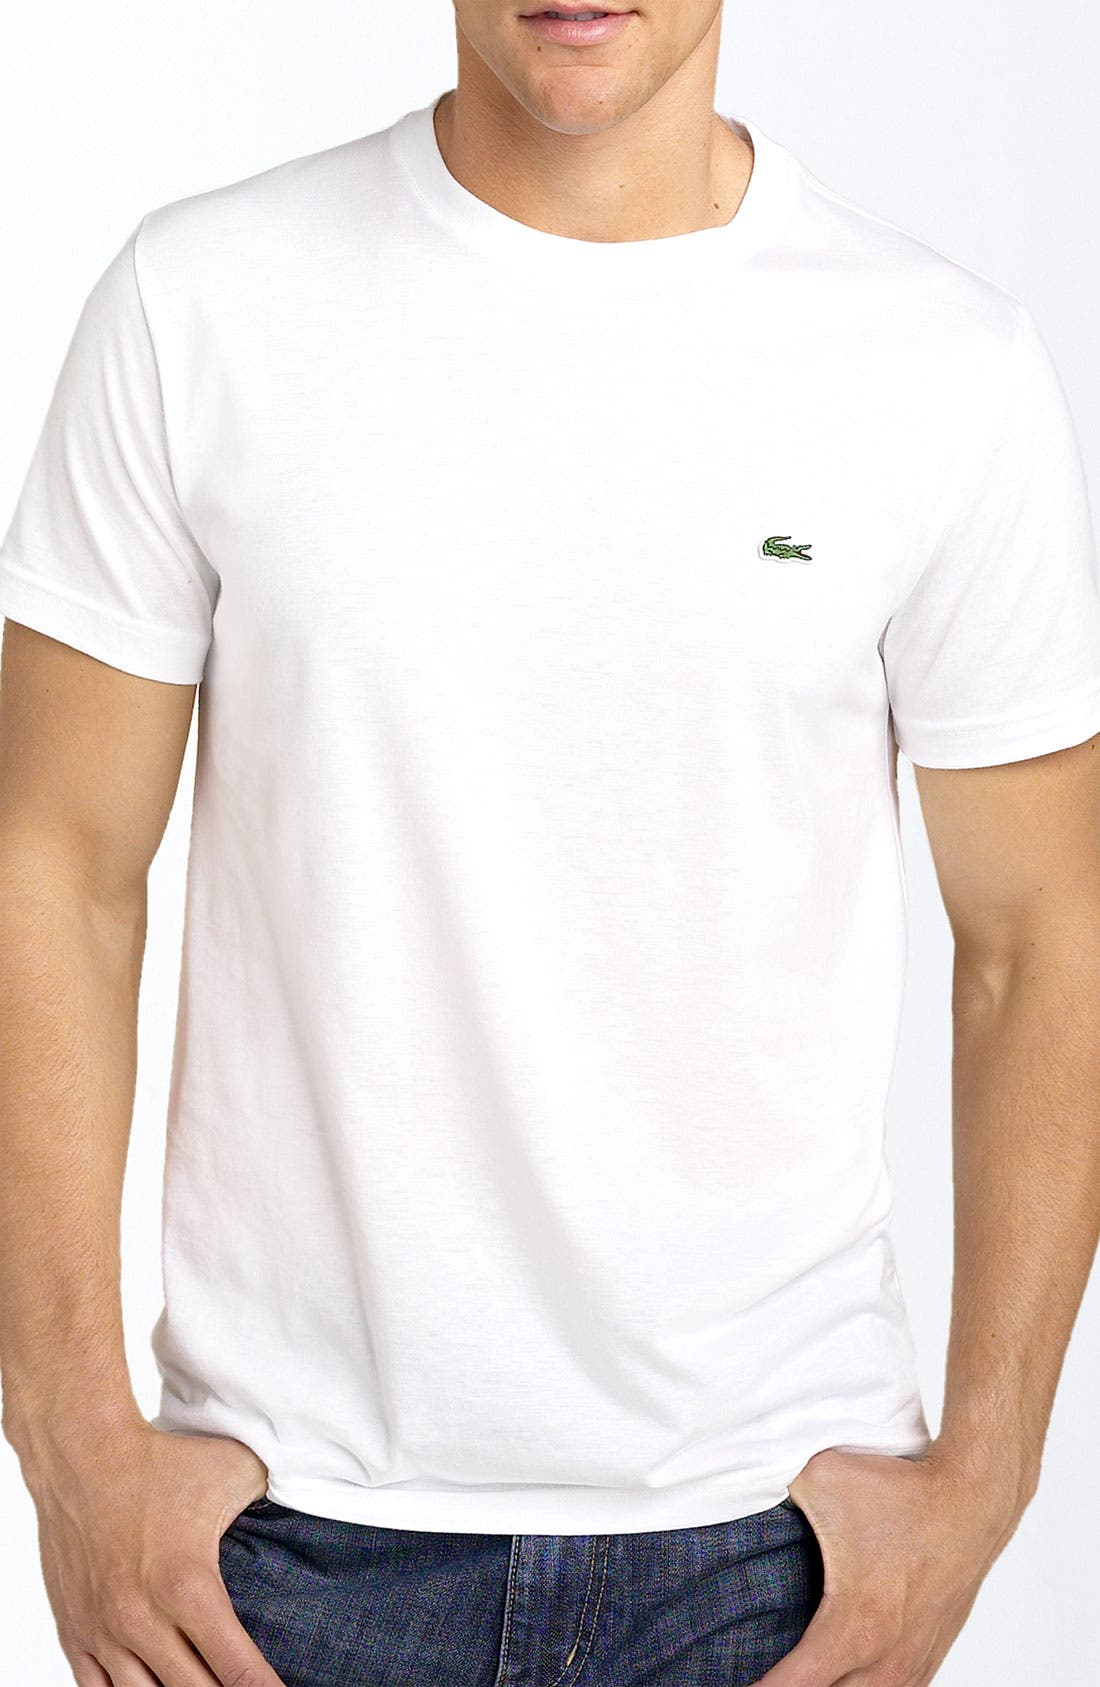 Alternate Image 1 Selected - Lacoste Cotton T-Shirt (Tall)